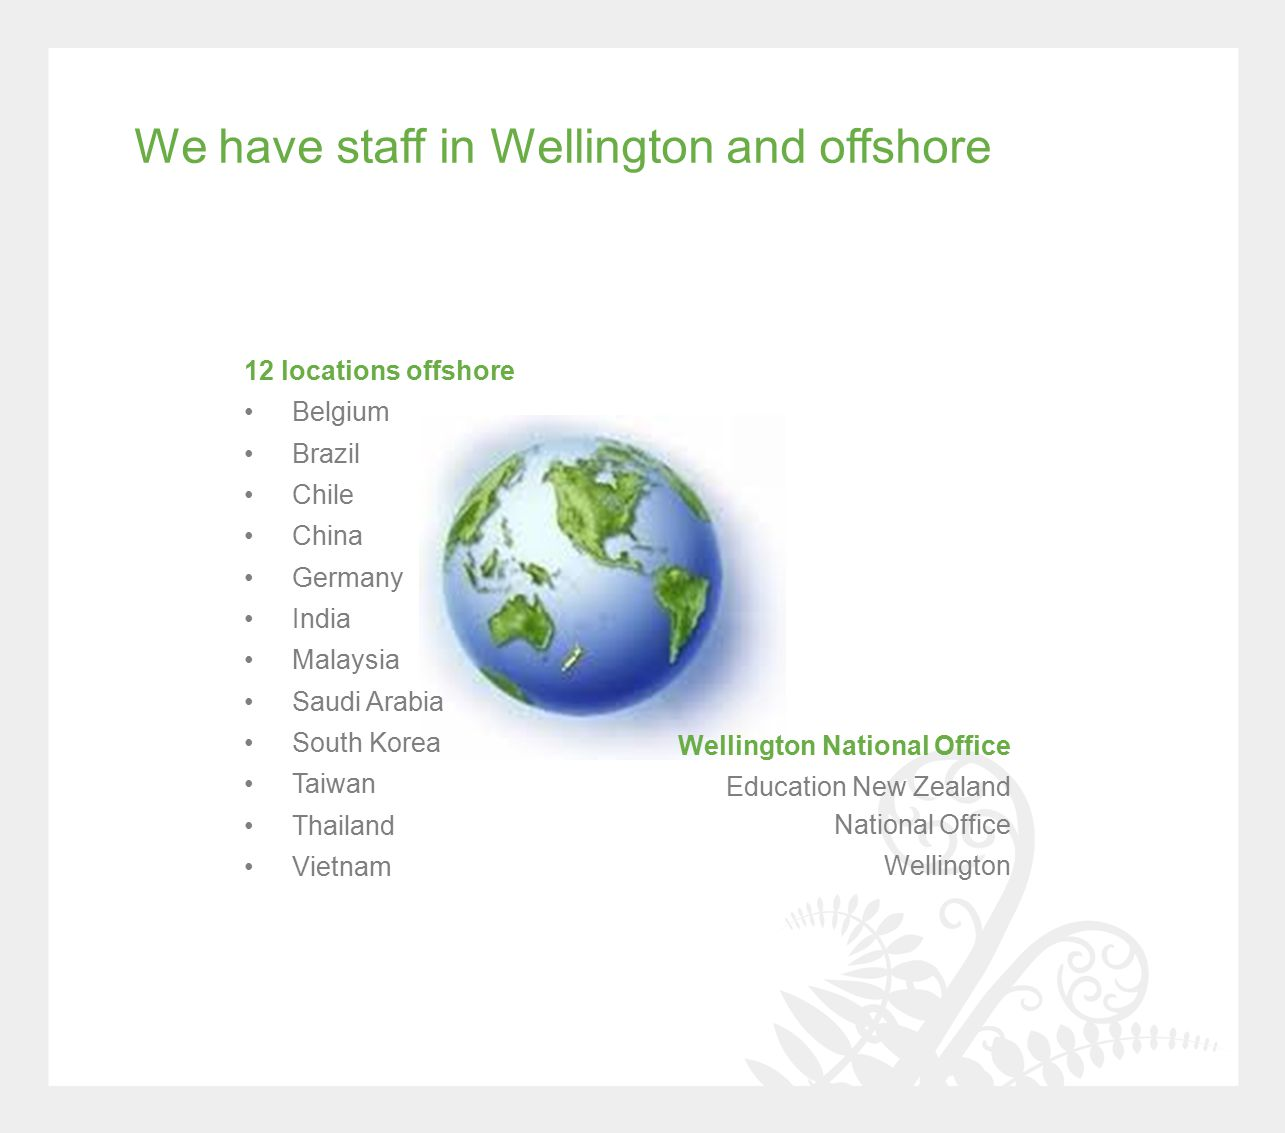 We have staff in Wellington and offshore Wellington National Office Education New Zealand National Office Wellington 12 locations offshore Belgium Brazil Chile China Germany India Malaysia Saudi Arabia South Korea Taiwan Thailand Vietnam